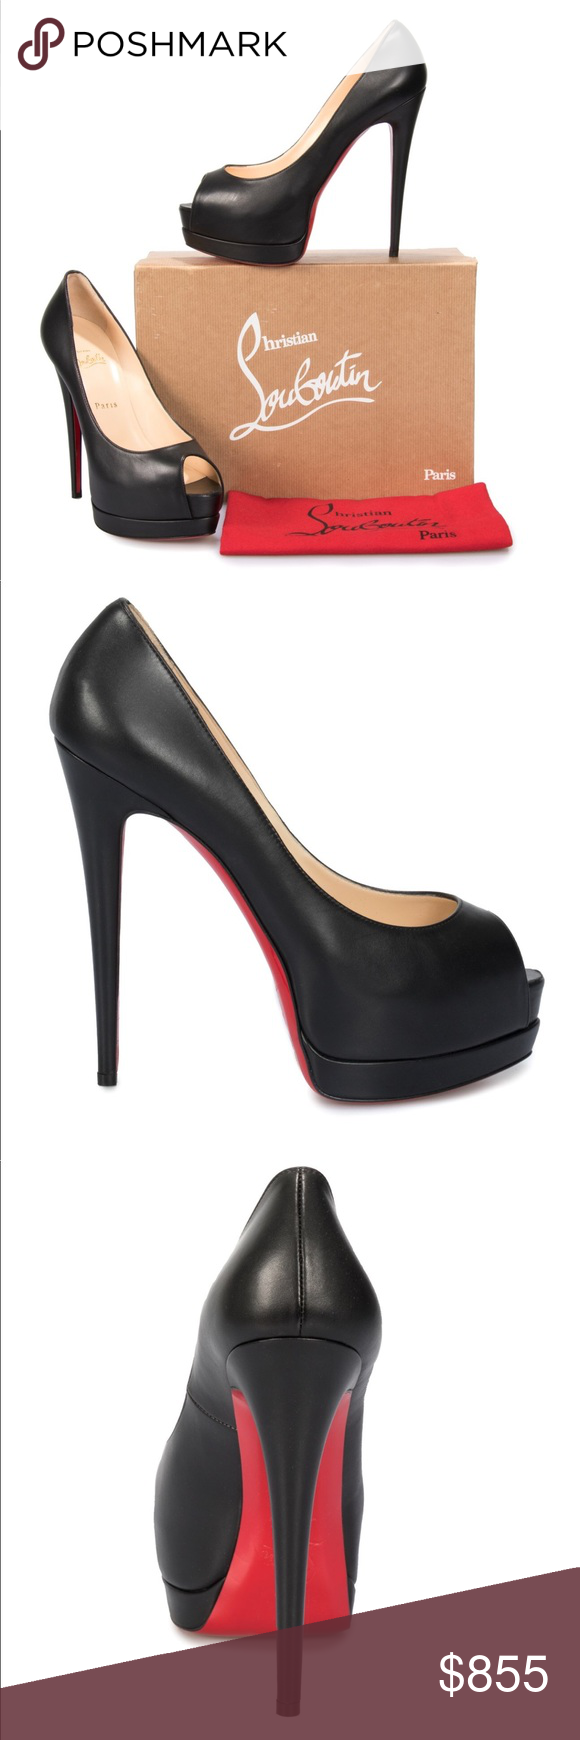 1a9fb4c16ab Christian Louboutin Palais Royal Authentic Christian Louboutin Palais  Royal. Gorgeous Black leather pumps. New comes with original box.